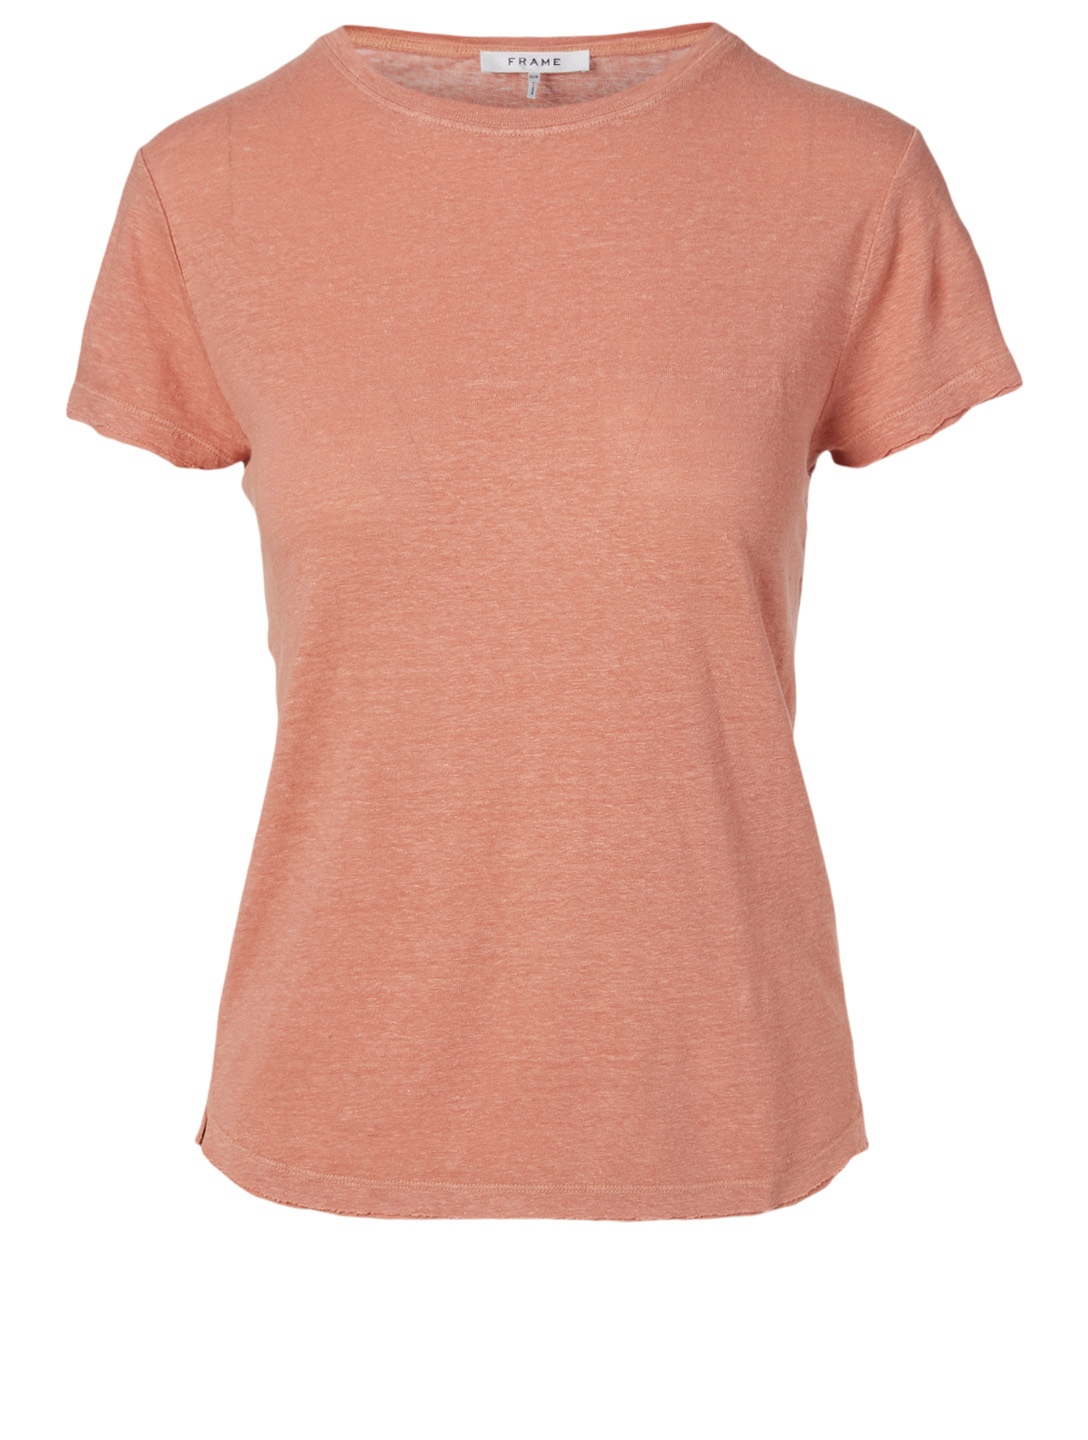 FRAME Easy True Linen T-Shirt Women's Brown